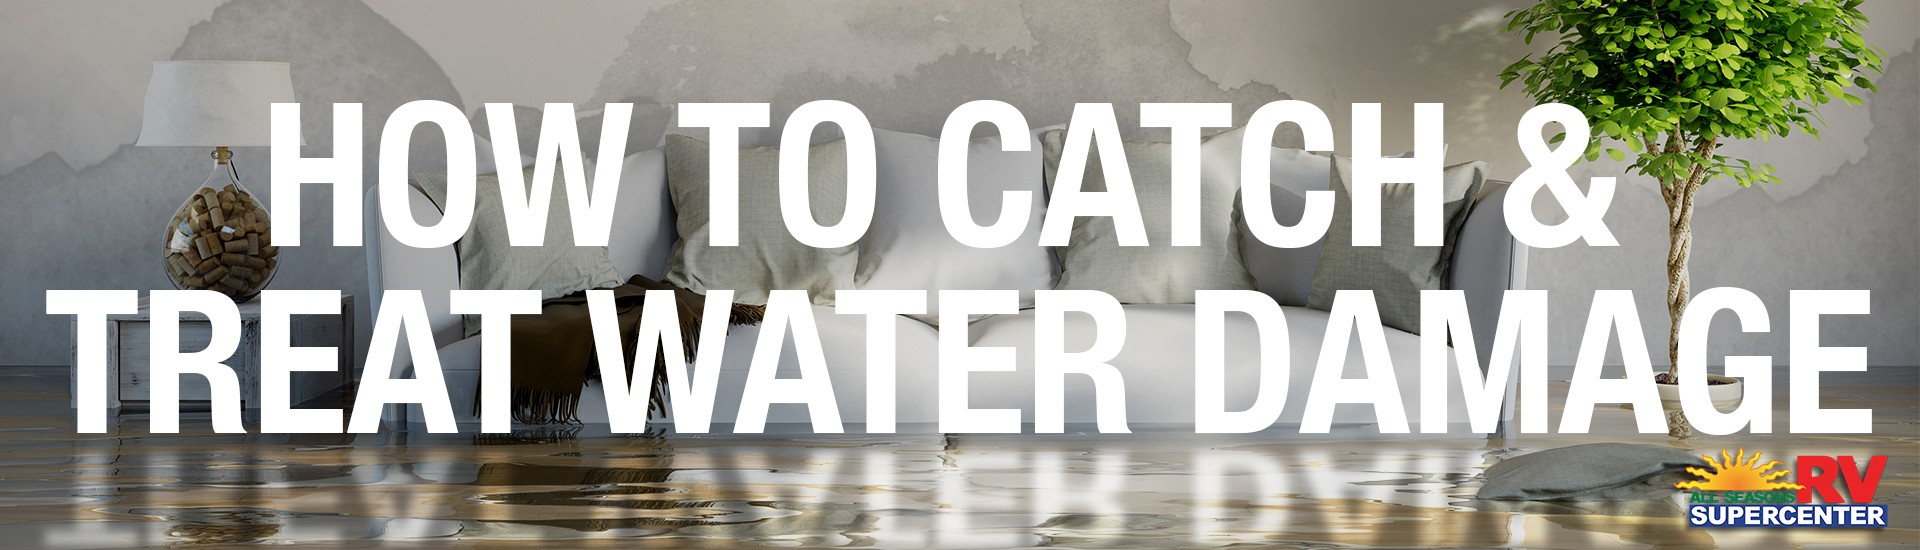 How to Catch and Treat Water Damage